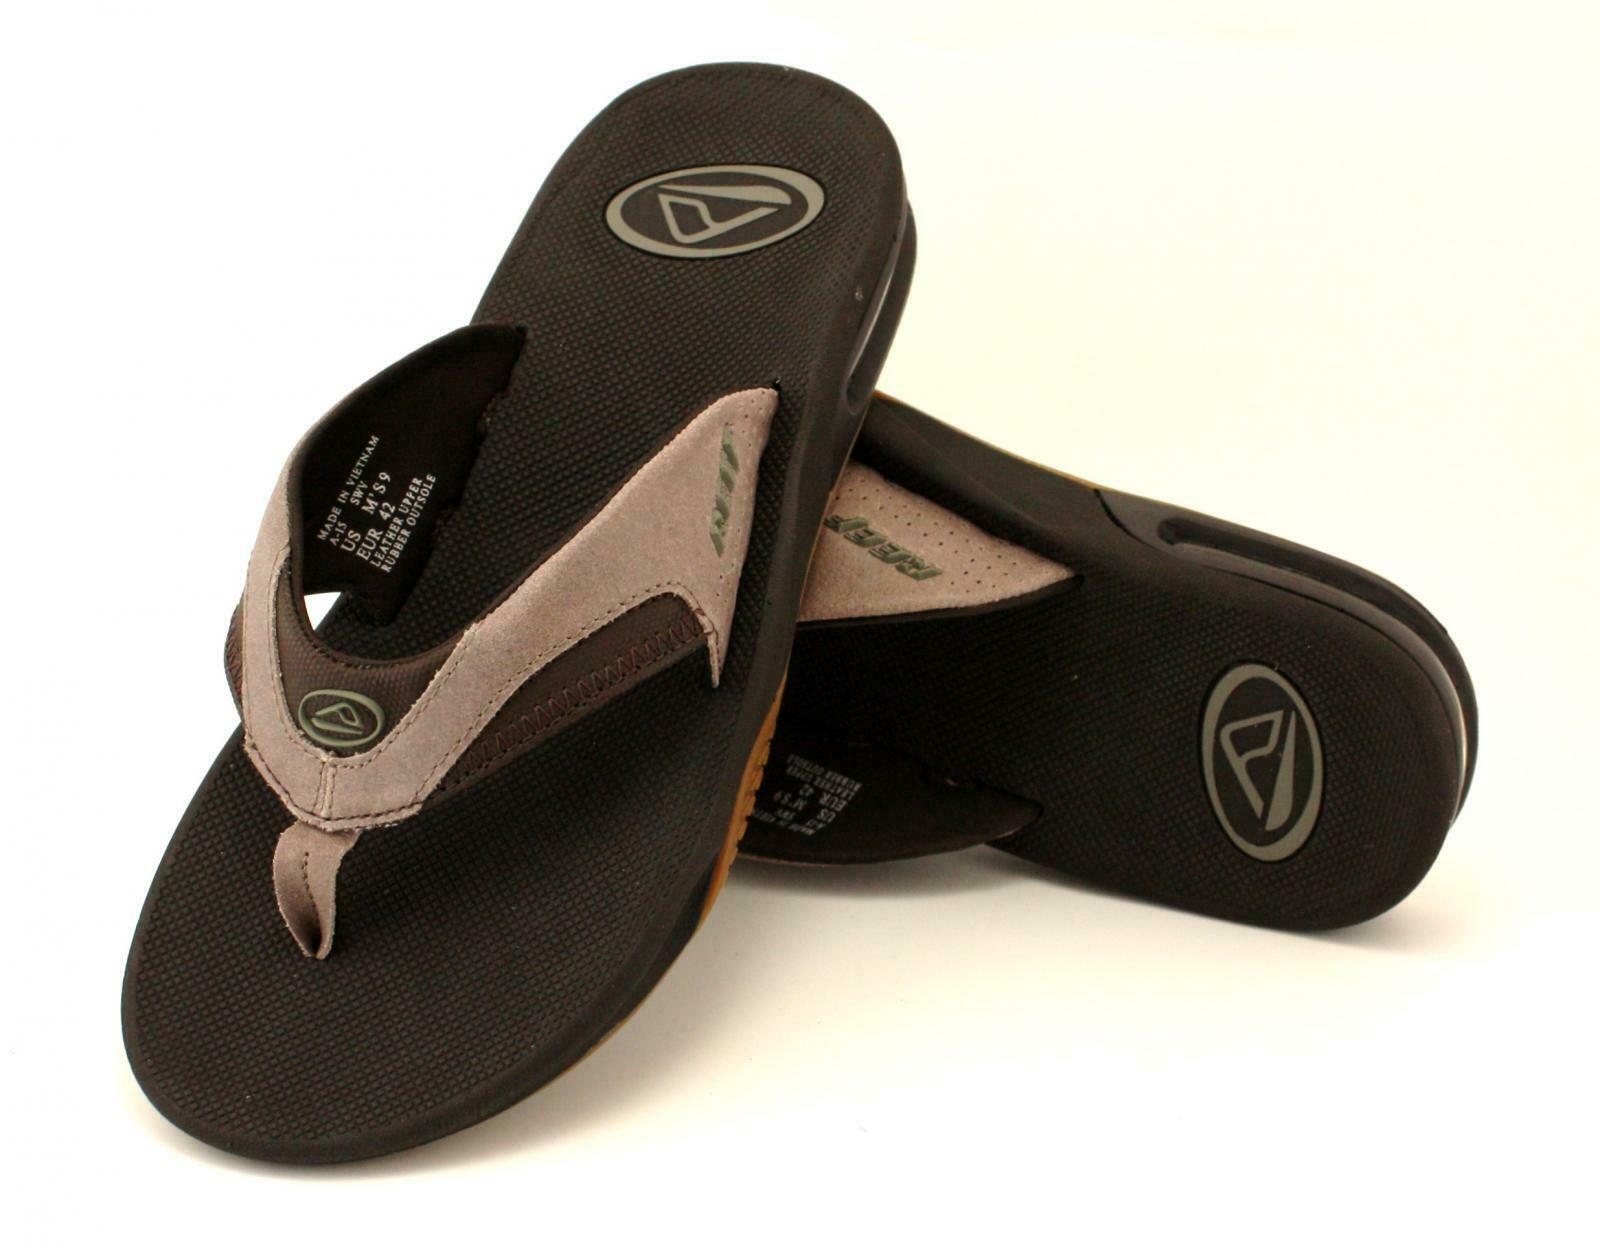 herren FLIP FLOPS FROM REEF. braun  TAN  FANNING TX  GrößeS UK 8-13